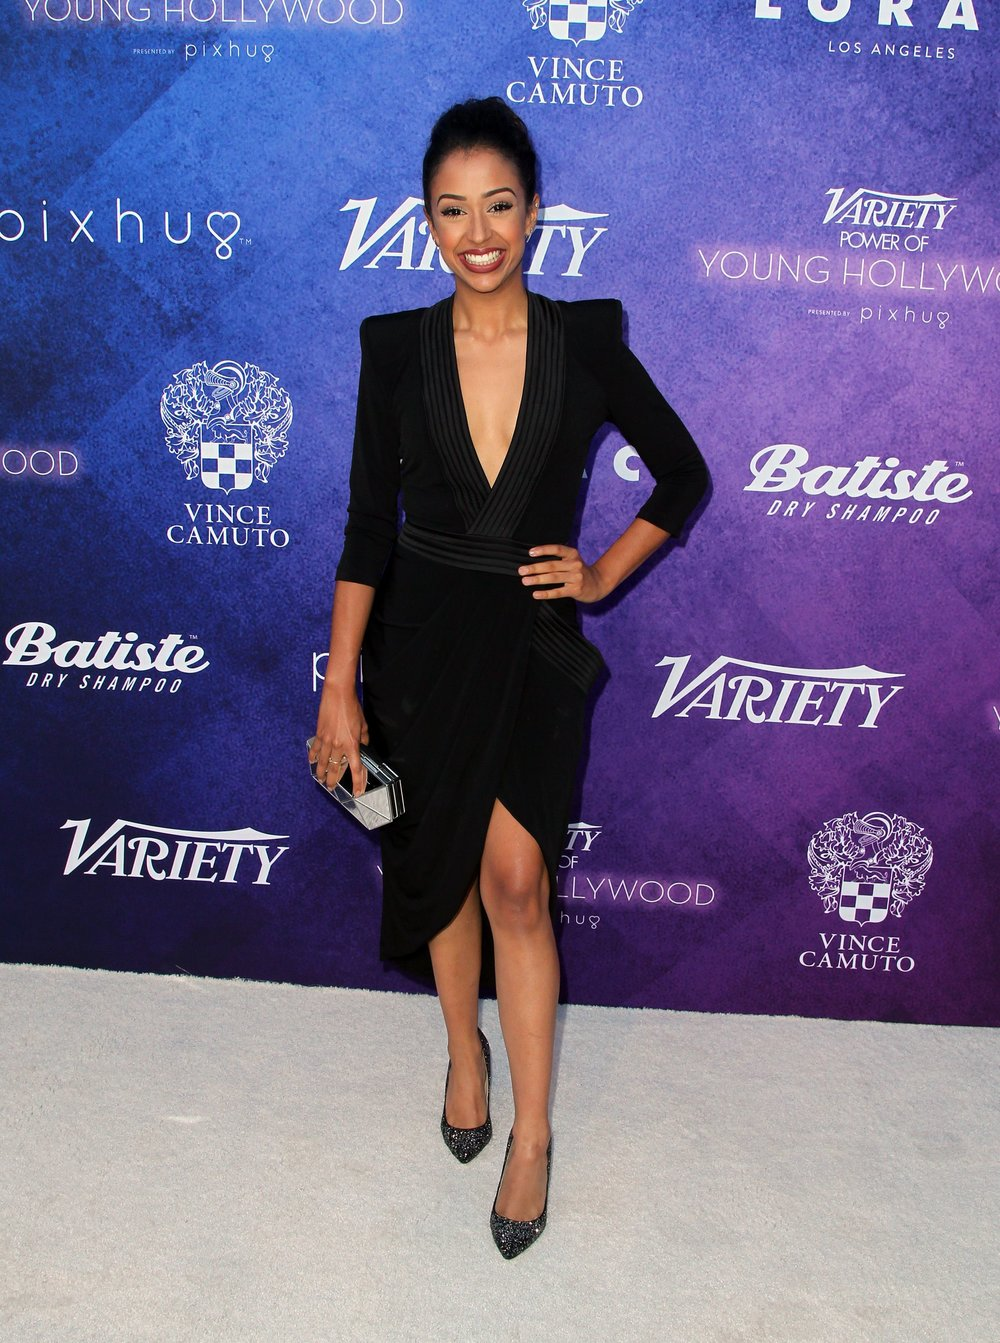 Liza Koshy carries the Vince Camuto Aleni Clutch and wears Imagine Vince Camuto Olsen Pumps.